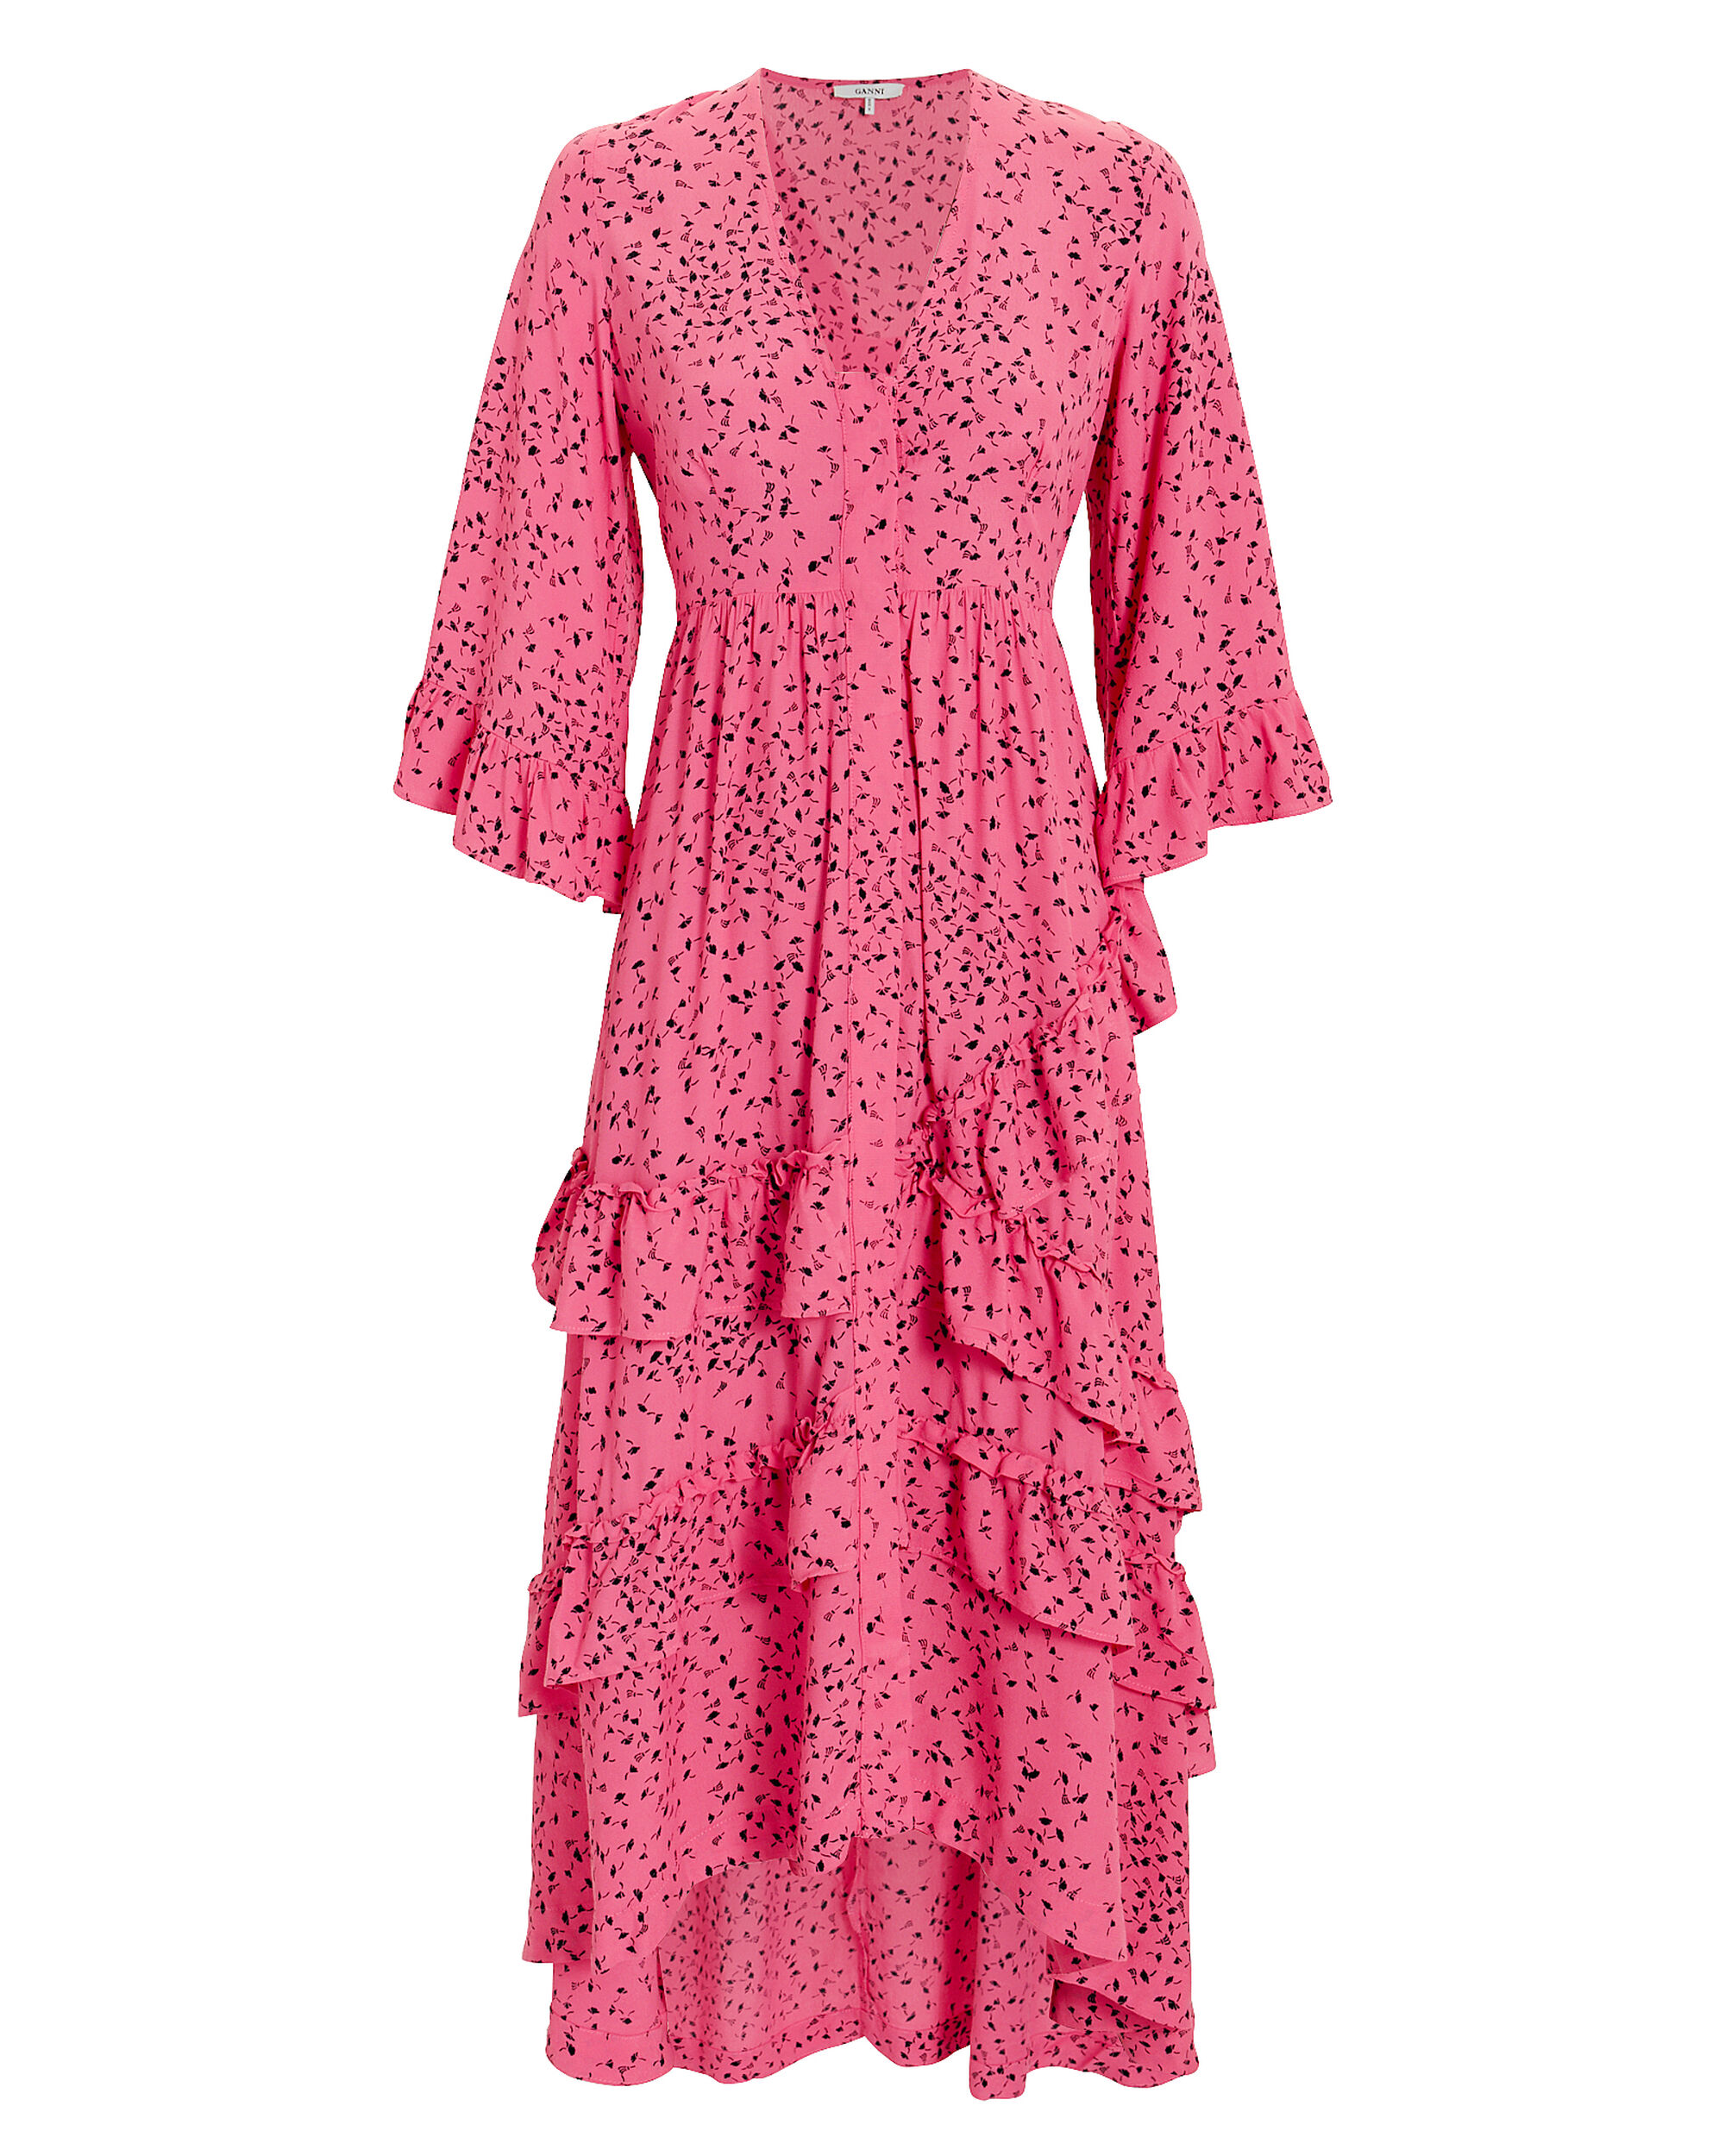 Barra Crepe Ruffle Maxi Dress, PINK, hi-res